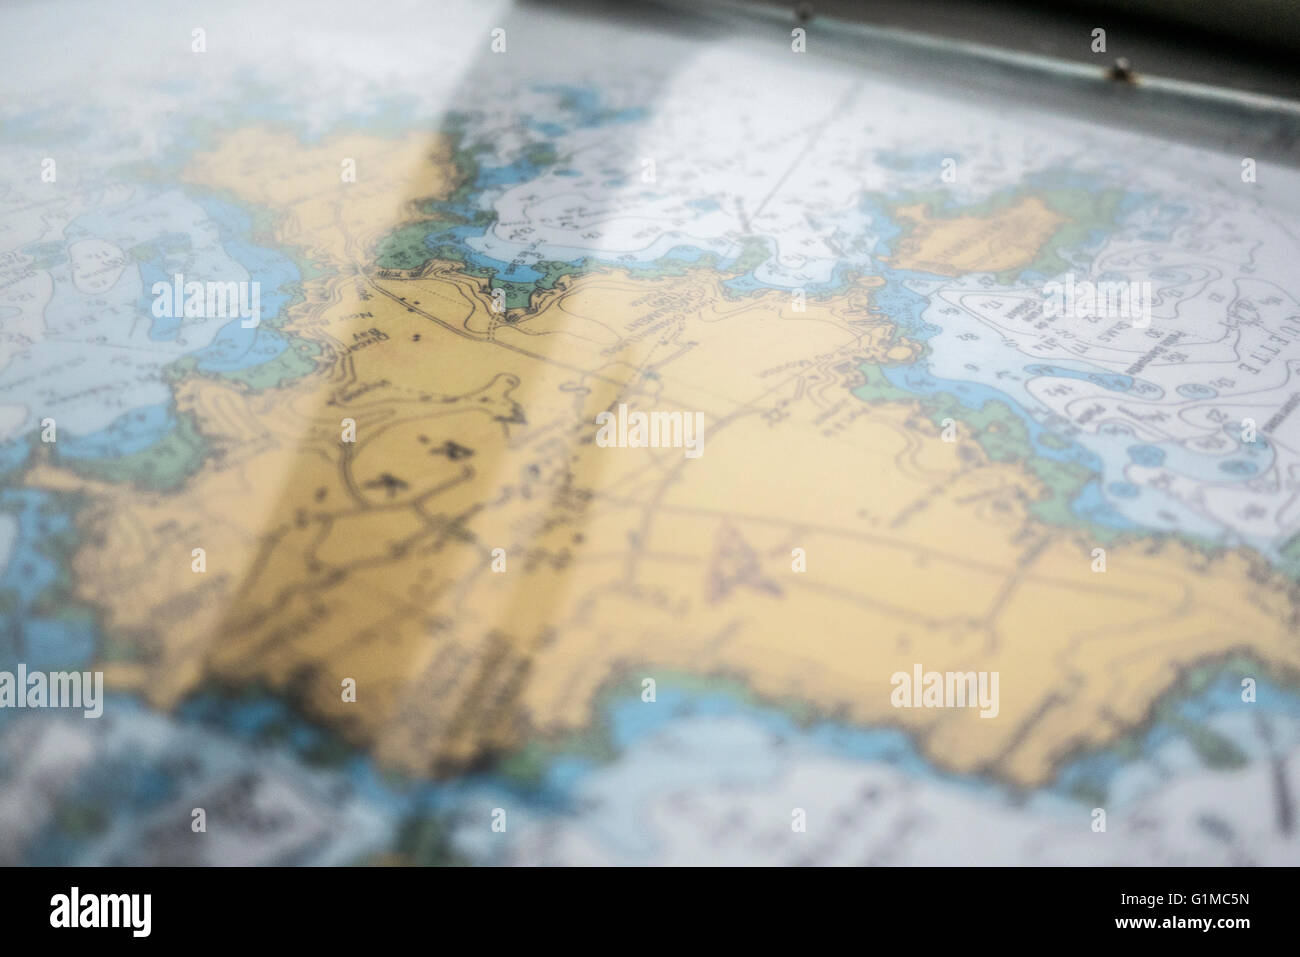 Close up photos of a shipping navigation map / chart of an island on a boat. - Stock Image